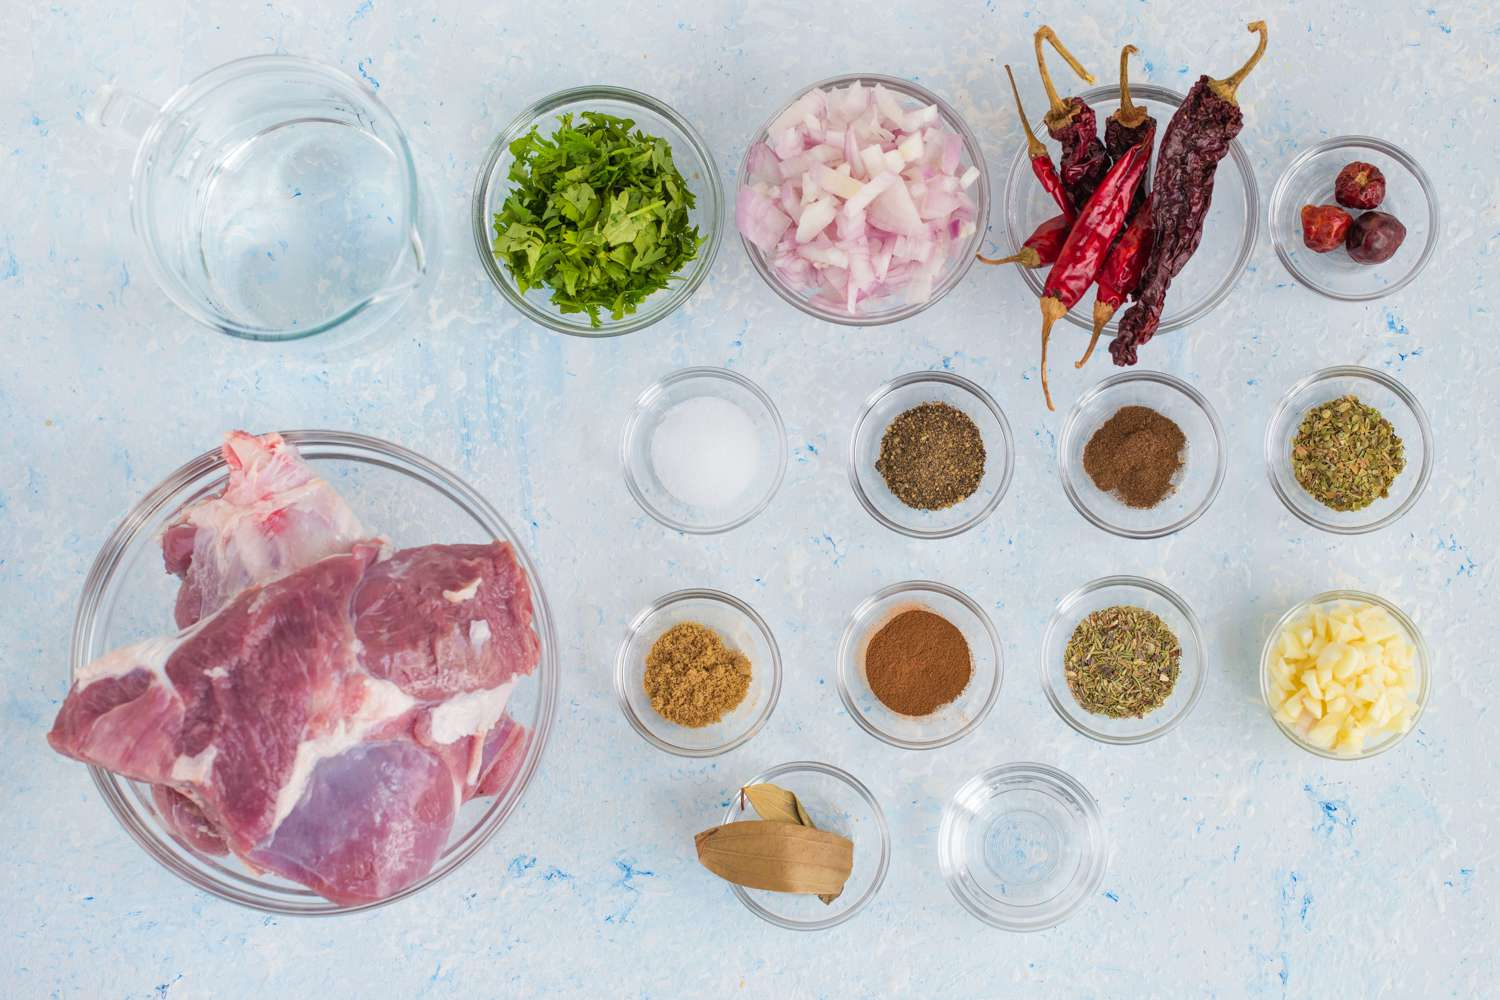 Ingredients for birria